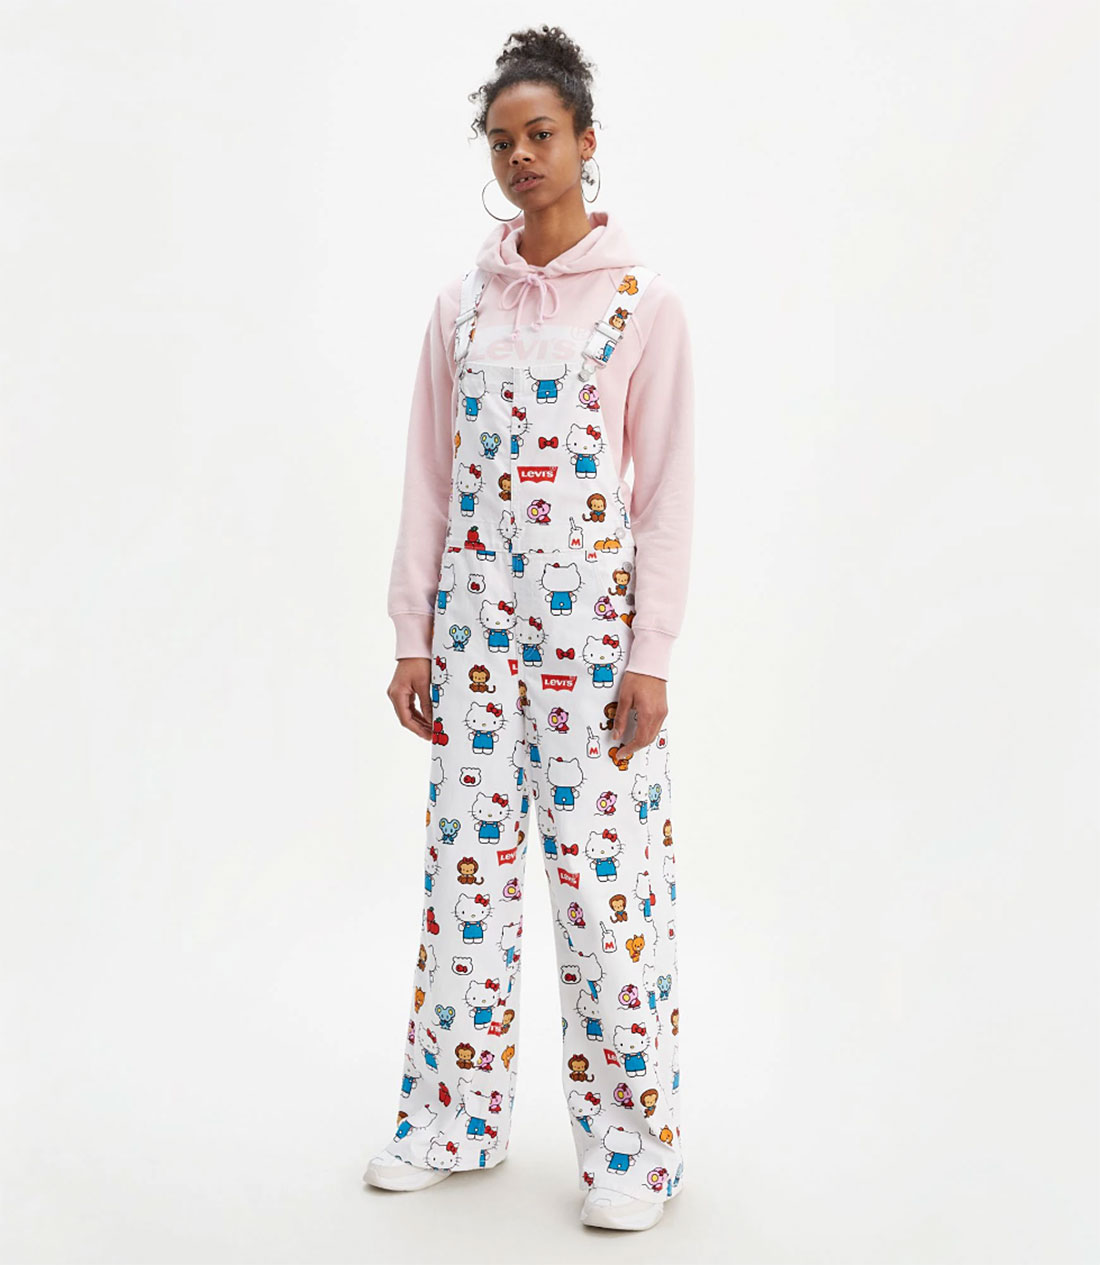 Levi's x Hello Kitty Limited-Edition Collection 2019: Pics